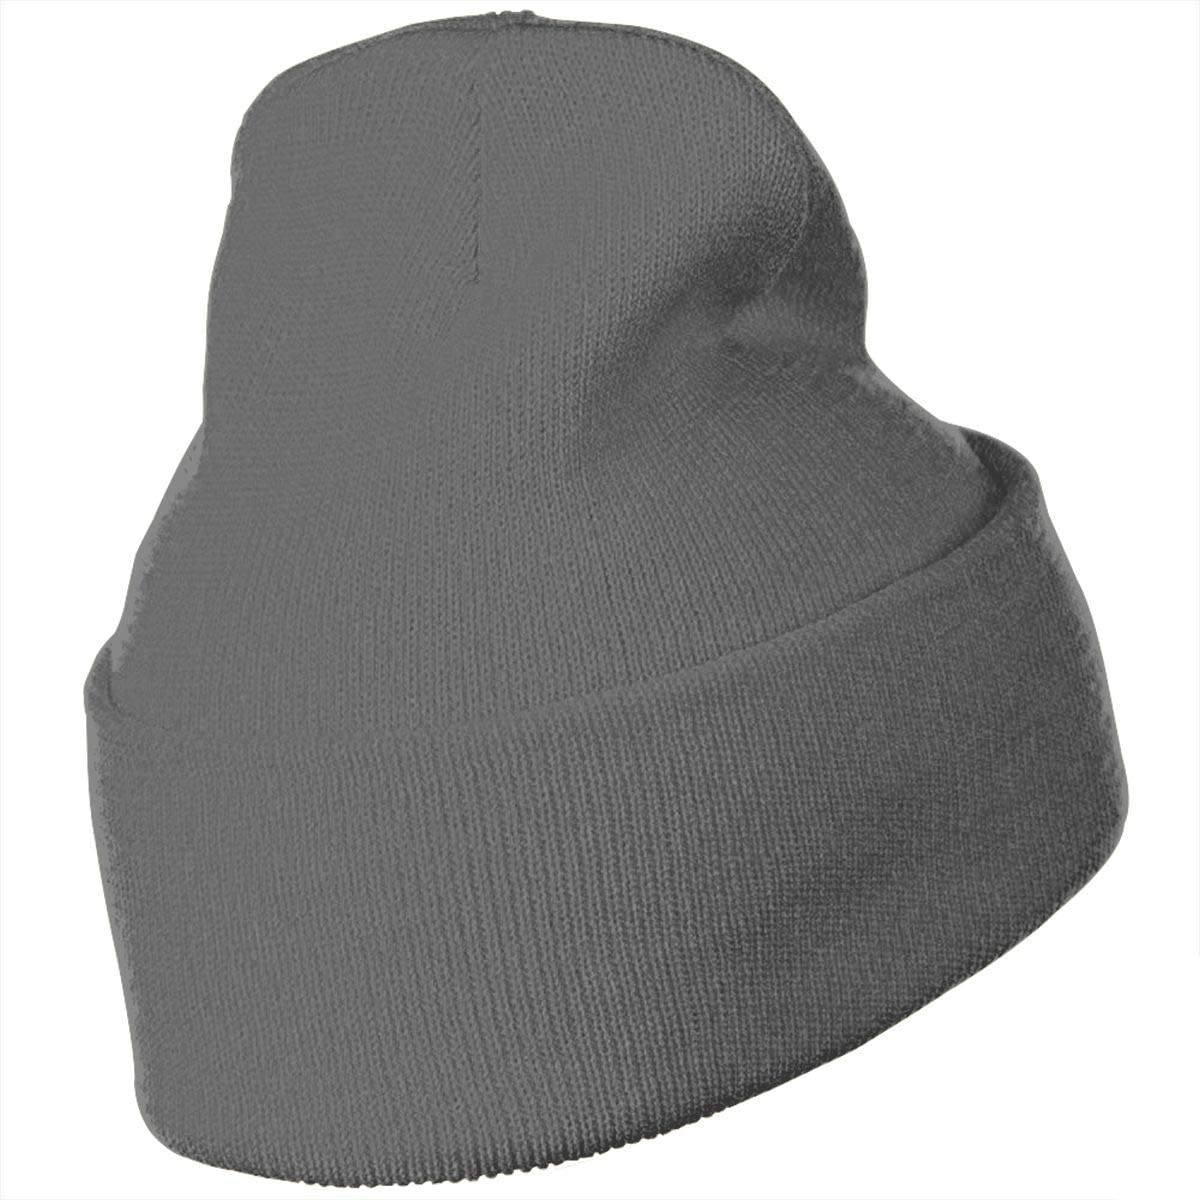 Unisex Winter Hats NRA National Rifle Association Skull Caps Knit Hat Cap Beanie Cap for Men//Womens